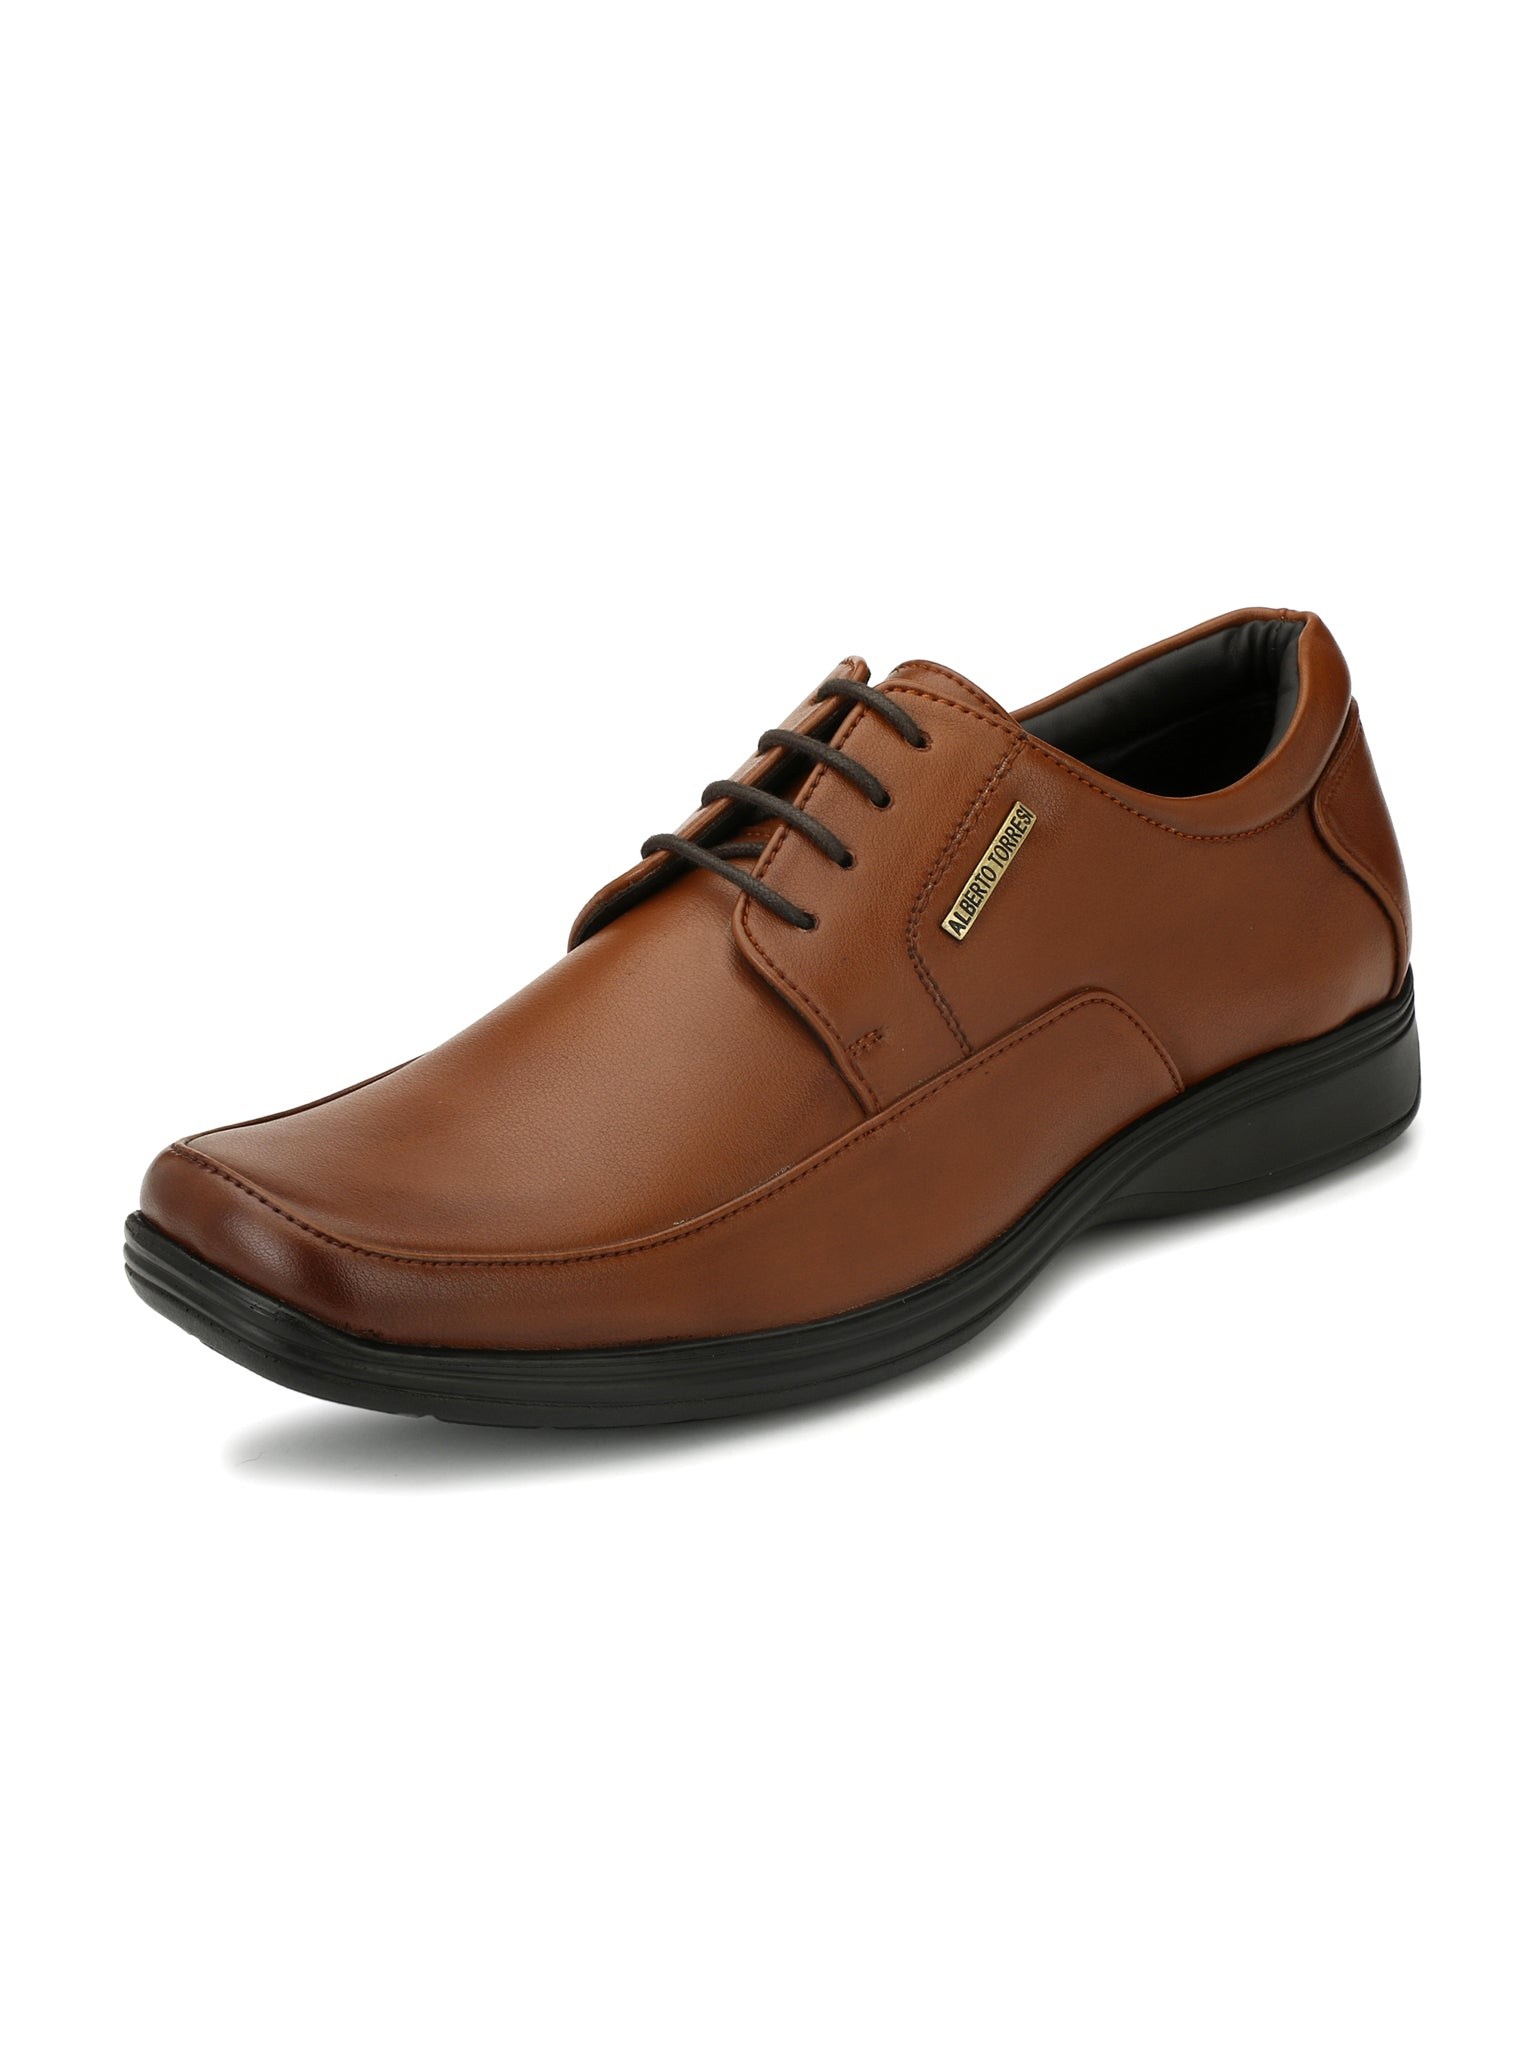 Alberto Torresi Men's Latin Tan Formal Shoes